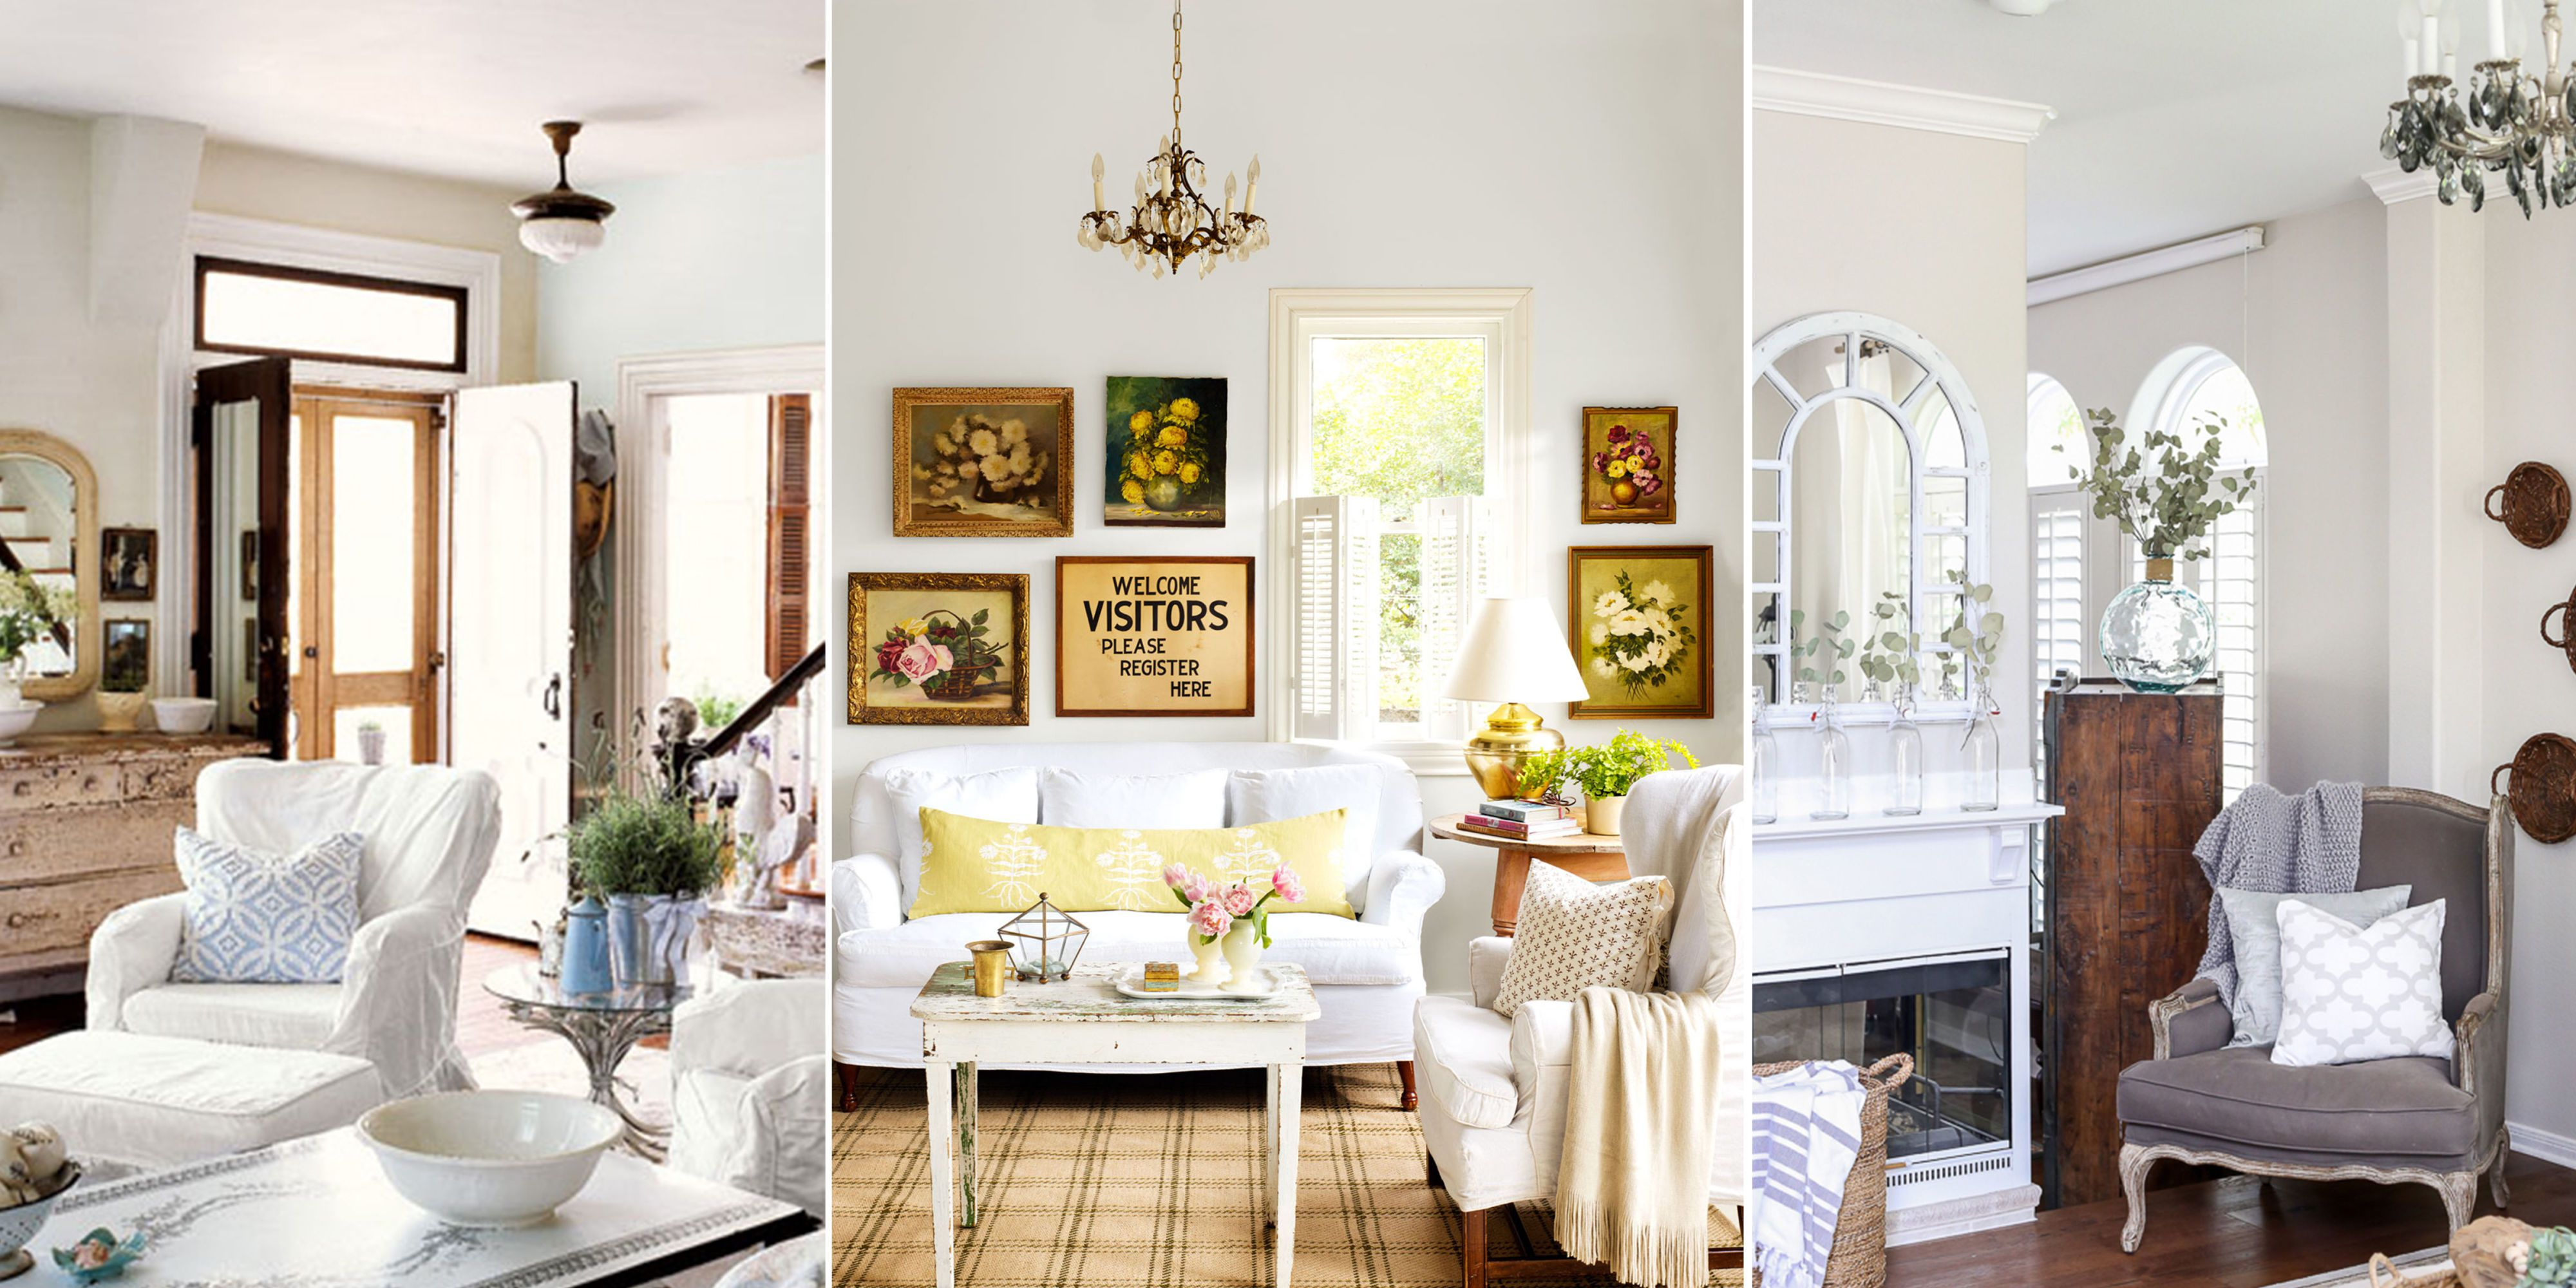 10 Shabby-Chic Living Room Ideas - Shabby Chic Decorating